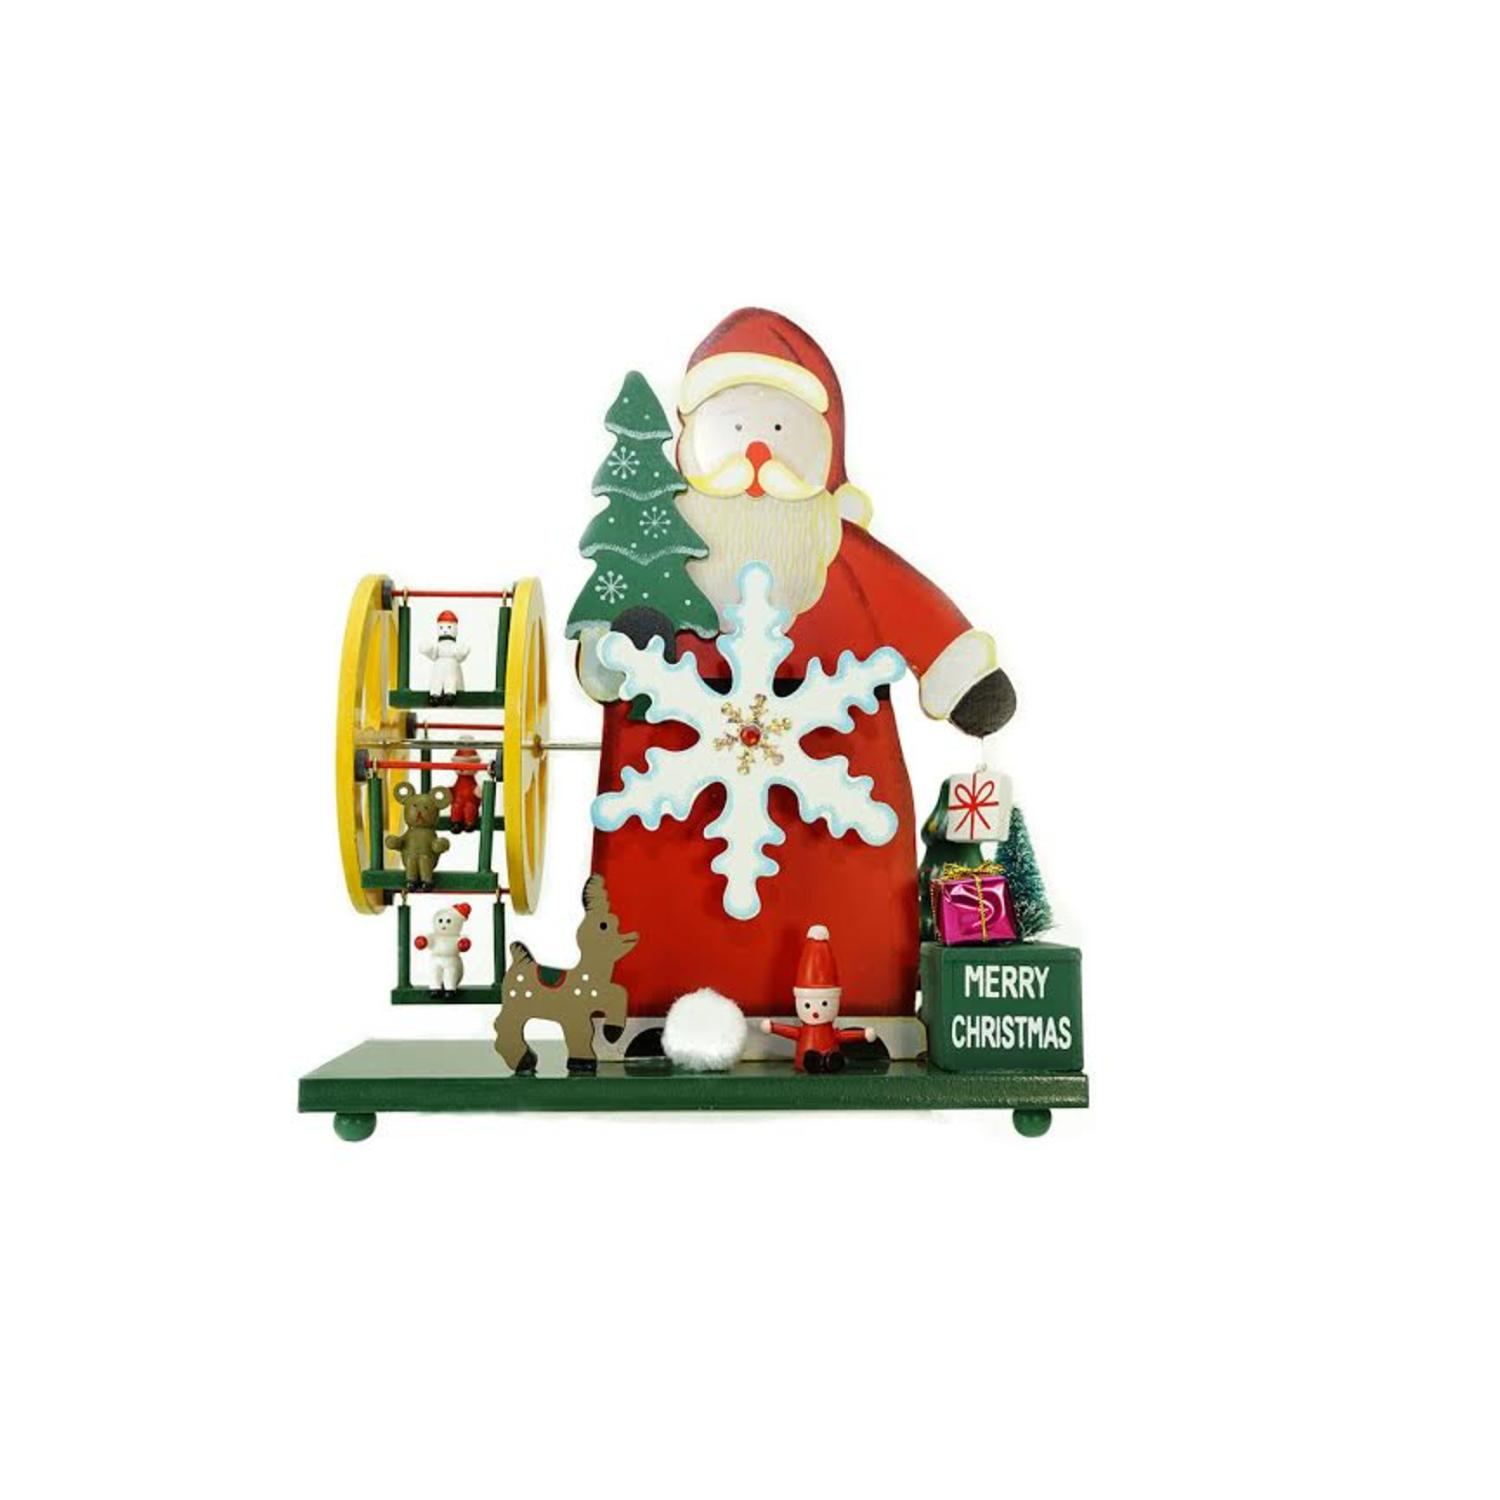 "9.25"" Wooden Santa Claus and Winter Wonderland ""Merry Christmas"" Musical Table Top Decoration"